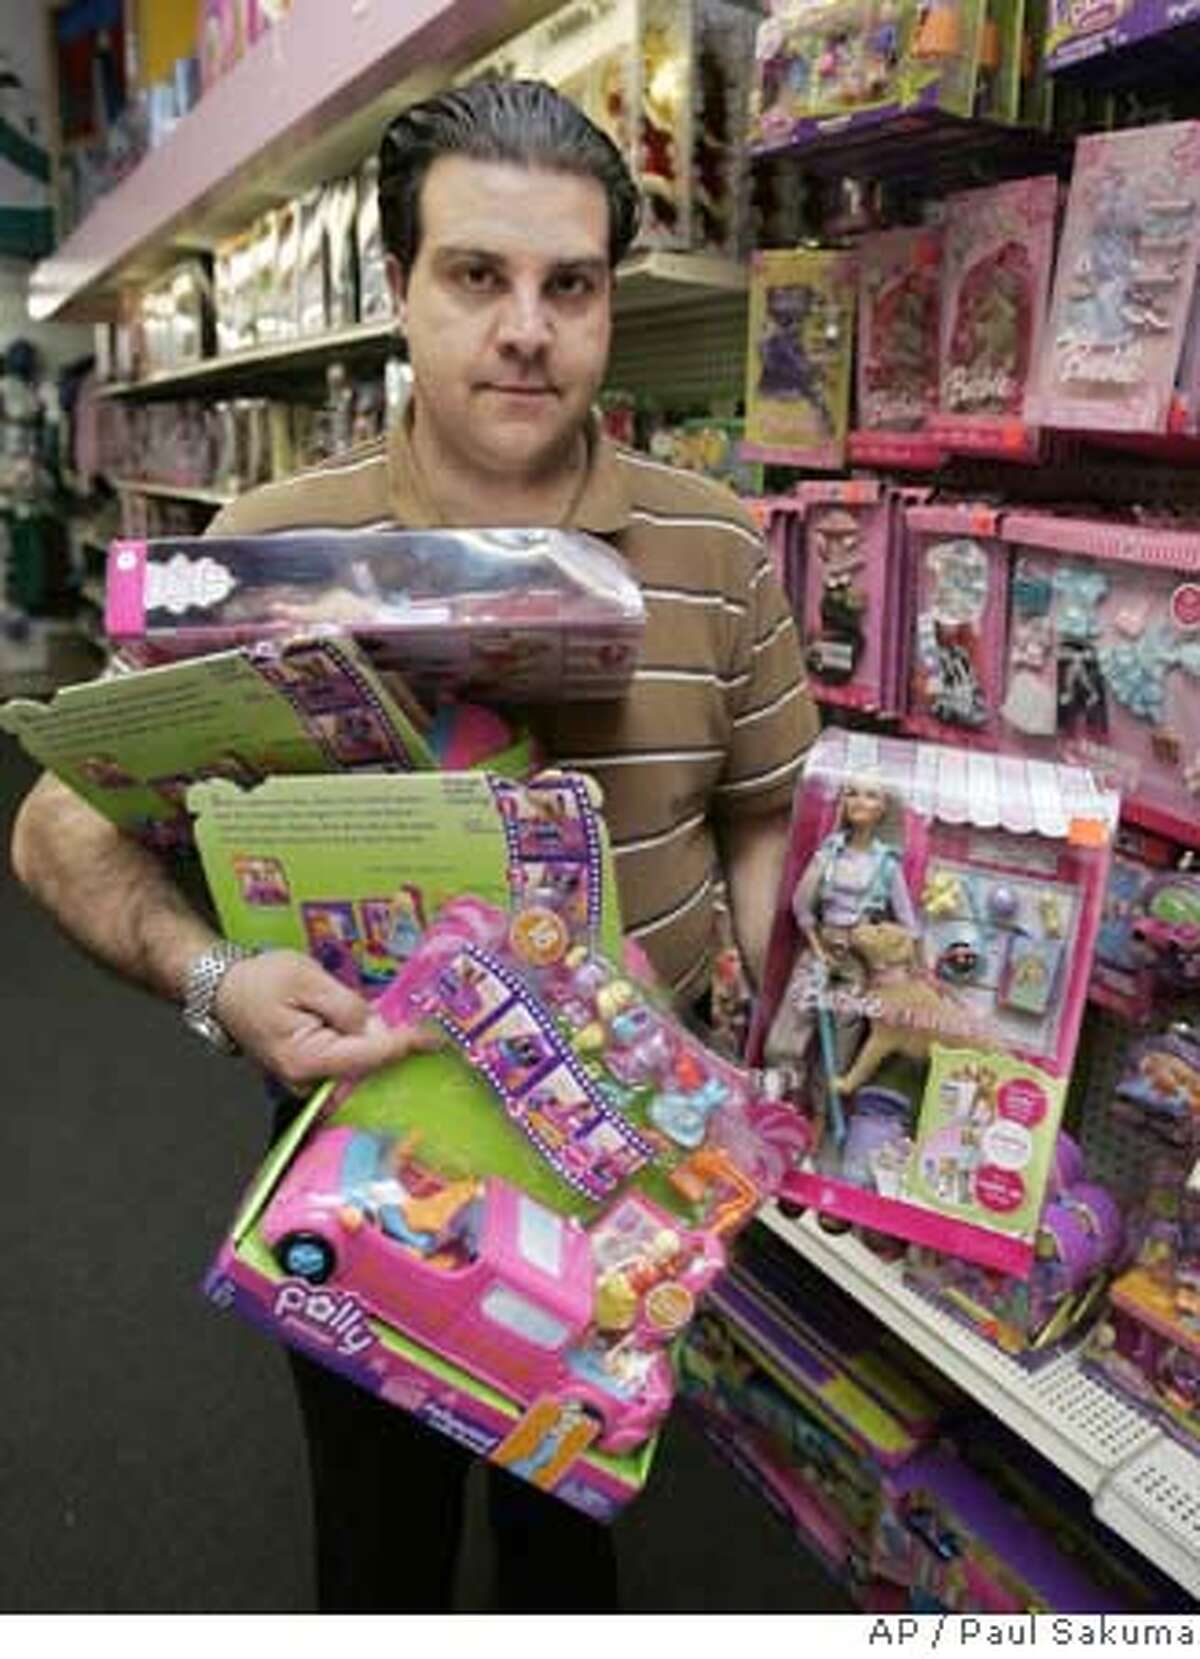 FILE - Keith Schumacker holds up the Polly Pocket Pollywood Limo-Scene, left, and the Barbie Tanner set, right, at Talbots Toyland in San Mateo, Calif., Tuesday, Aug. 14, 2007.